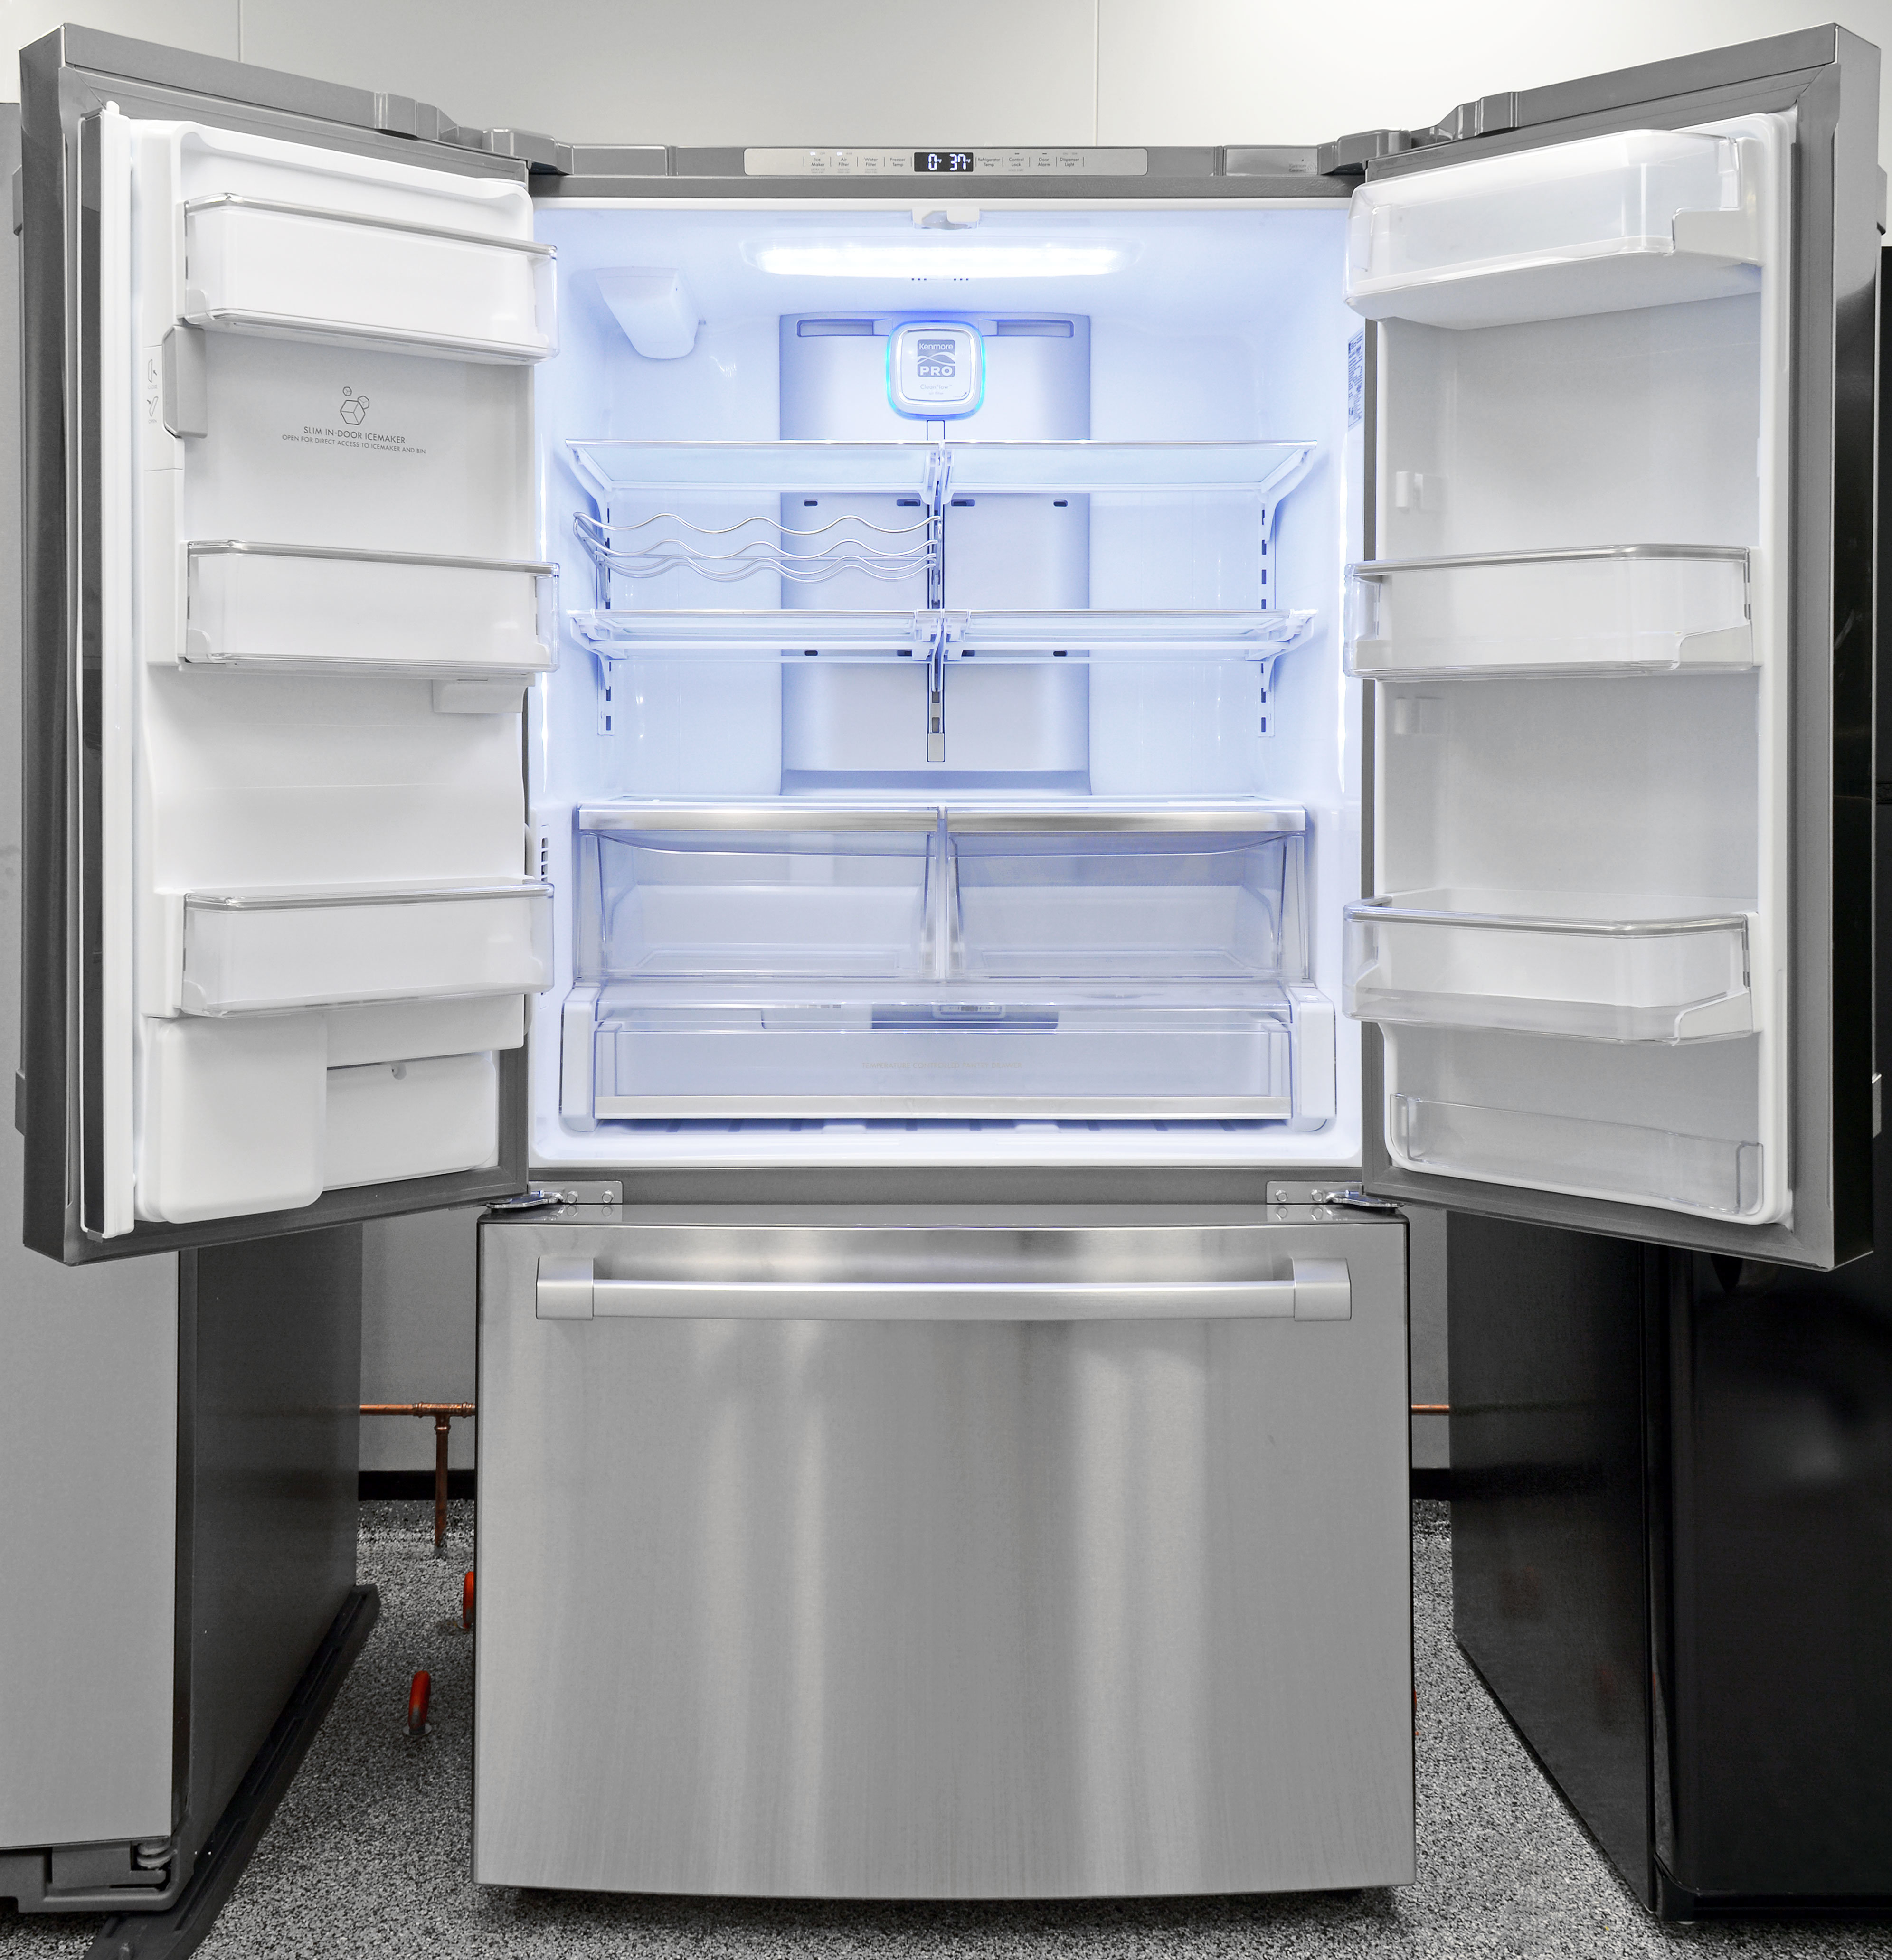 The Kenmore Pro 79993  is stylish, spacious, and counter depth in design–Kenmore's new approach to luxurious appliances.